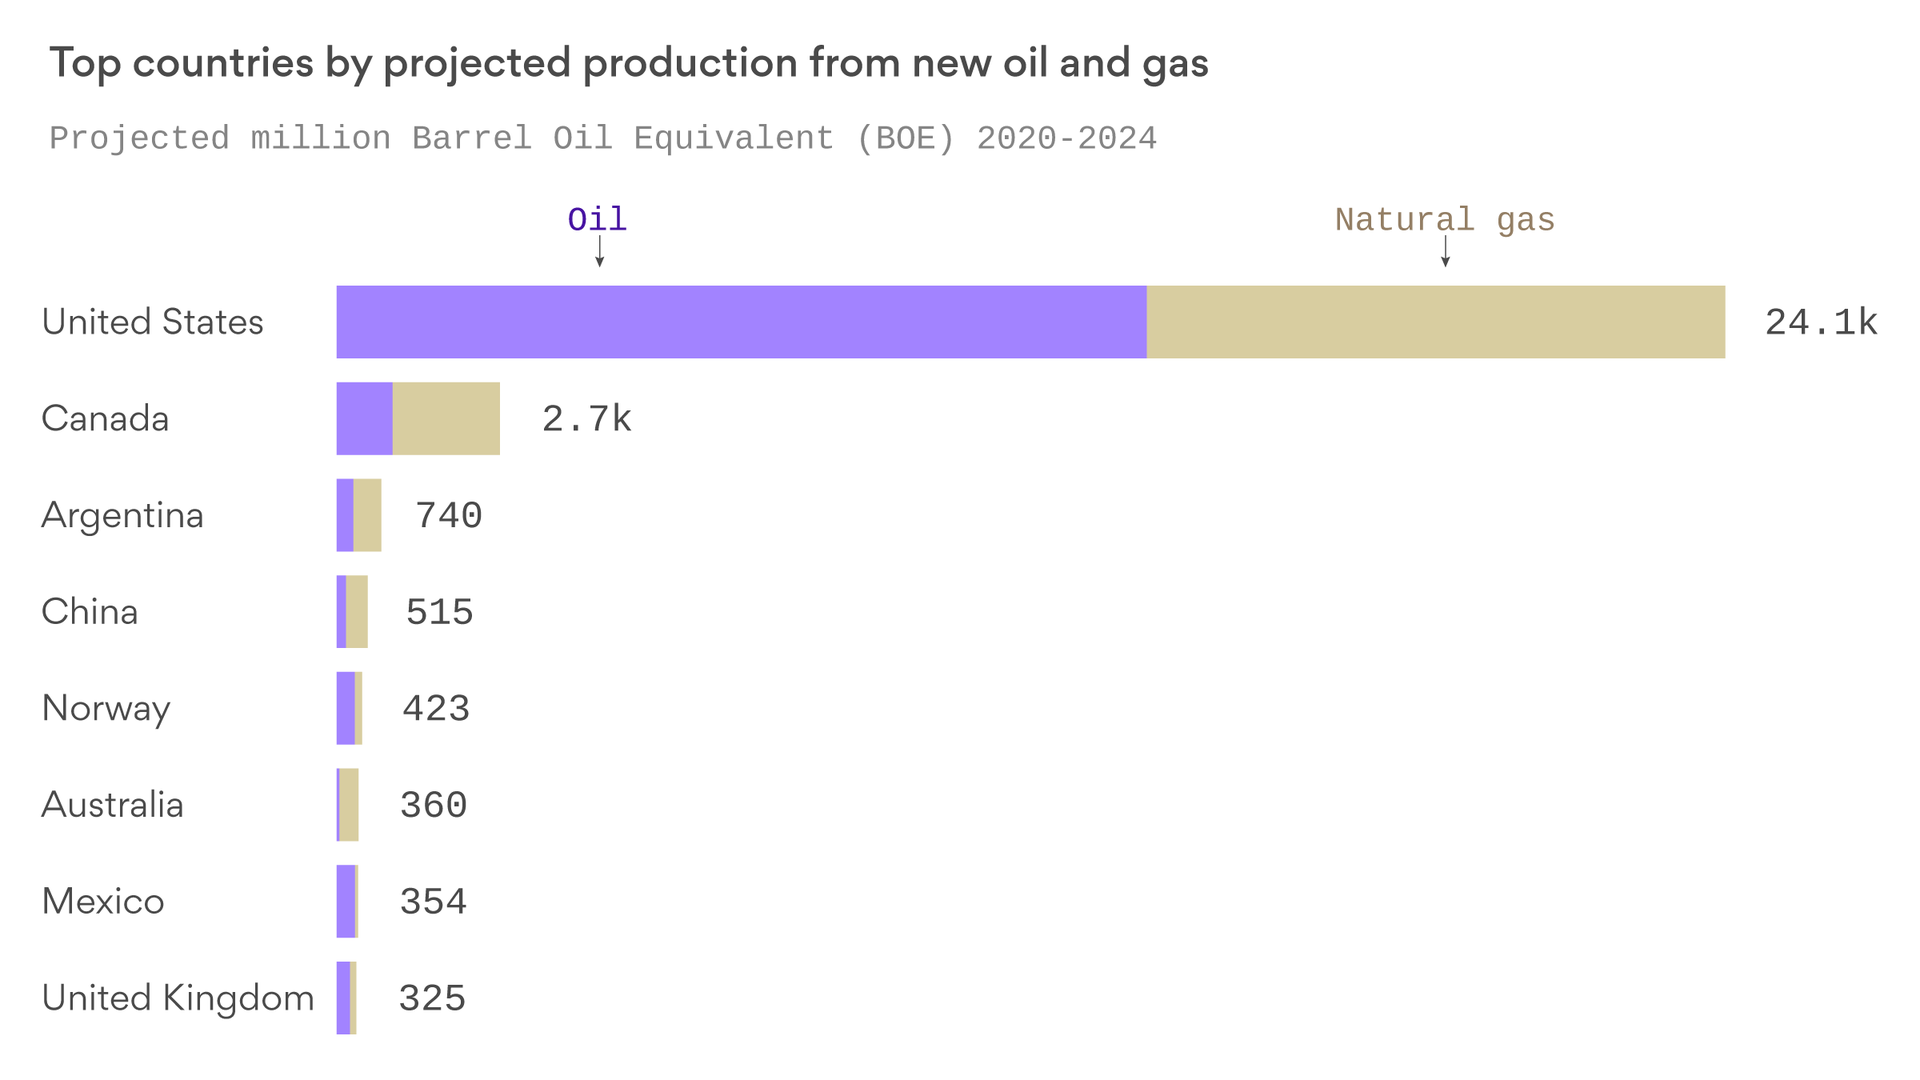 America blows past the world in oil and natural gas